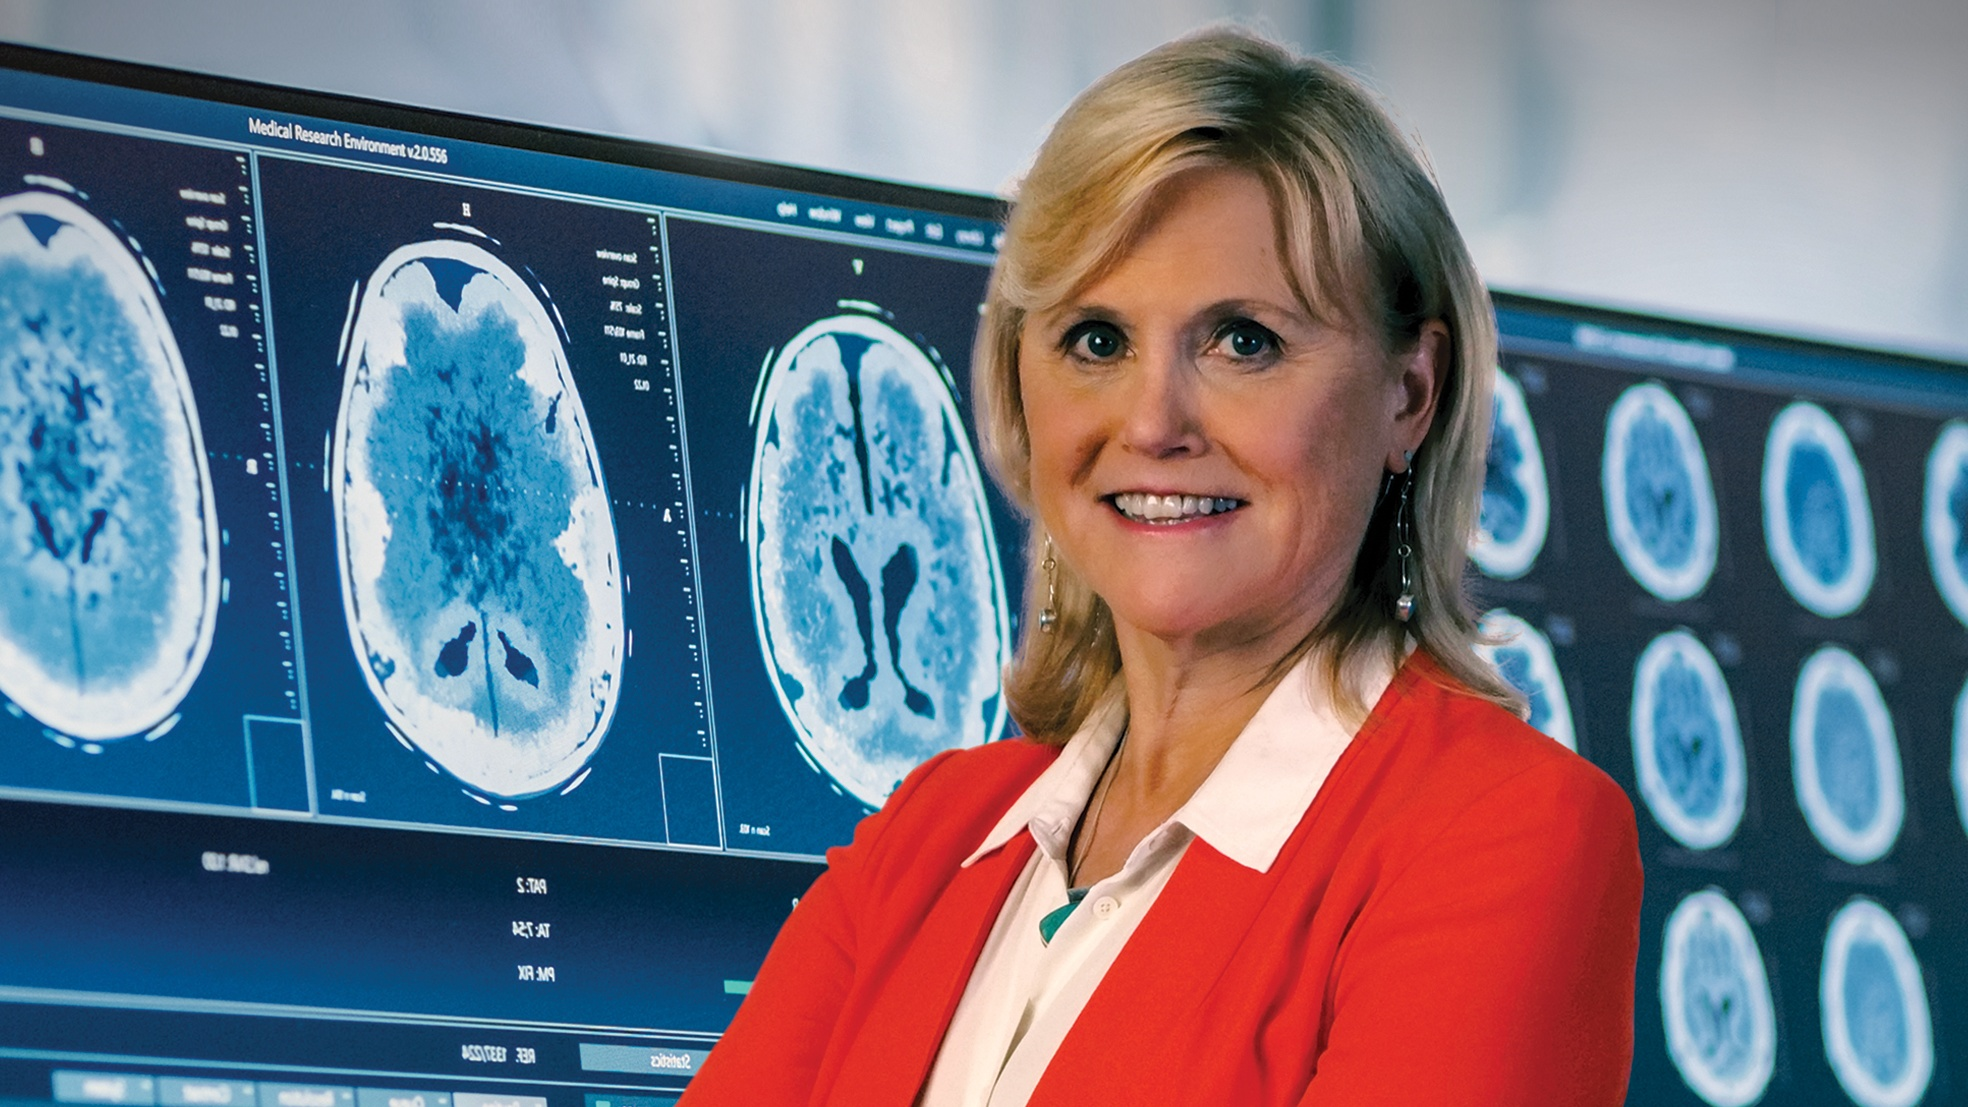 Ann McKee, chief of neuropathology at the VA Boston Healthcare System and recipient of the Paul A. Volcker Career Achievement Award. (Braun Film and Video, Inc.)